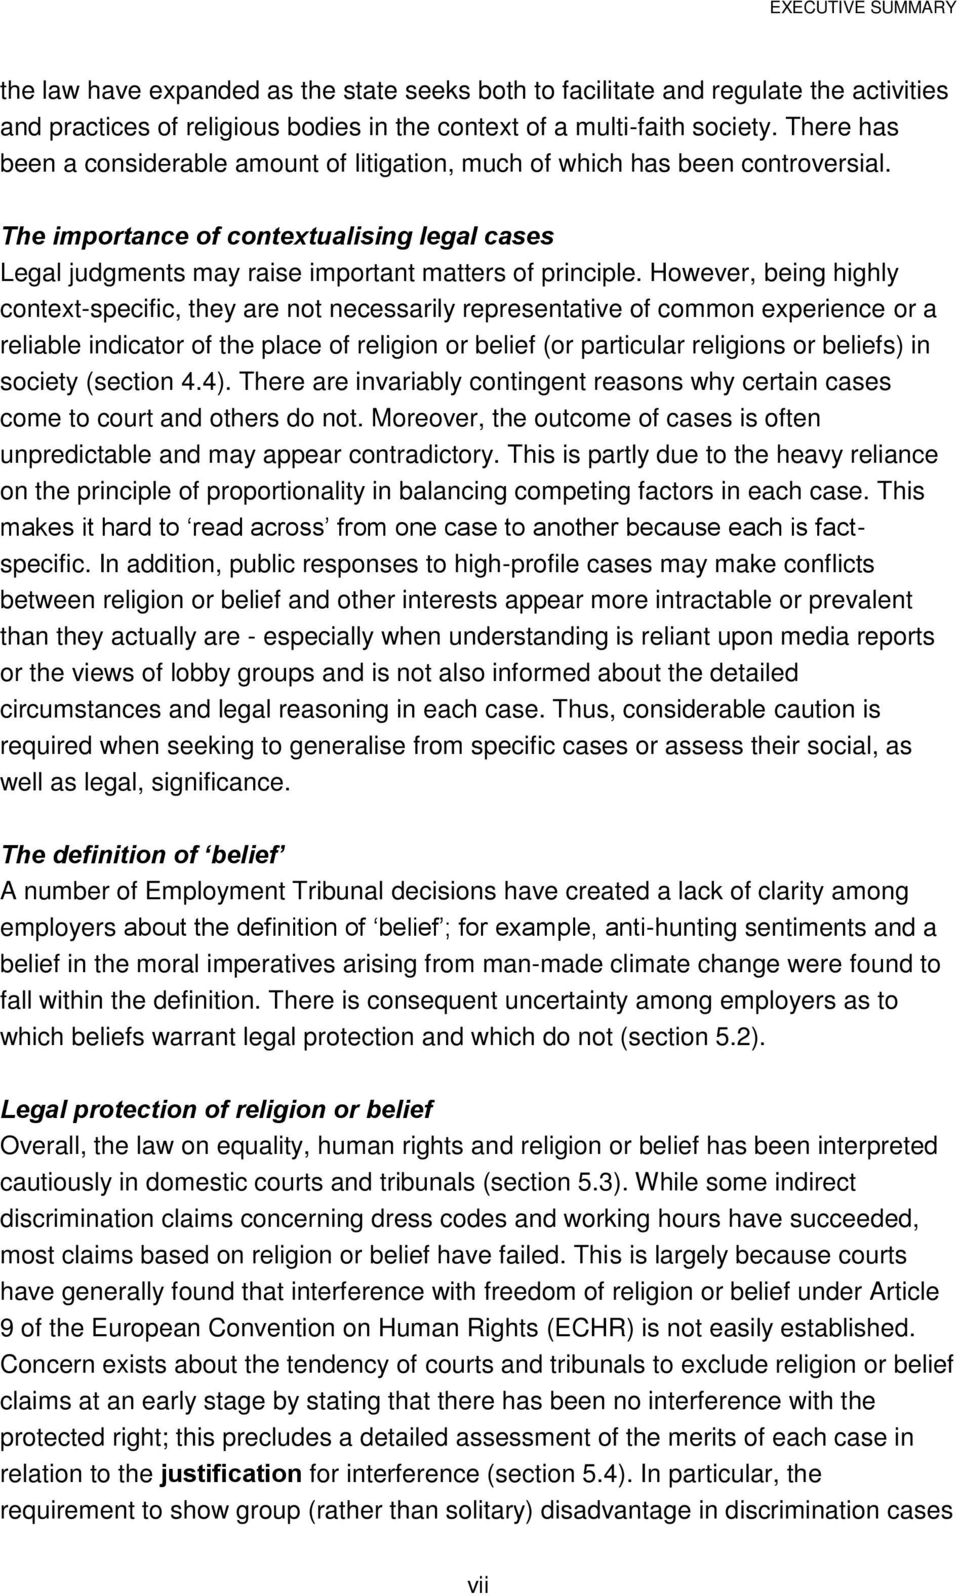 However, being highly context-specific, they are not necessarily representative of common experience or a reliable indicator of the place of religion or belief (or particular religions or beliefs) in